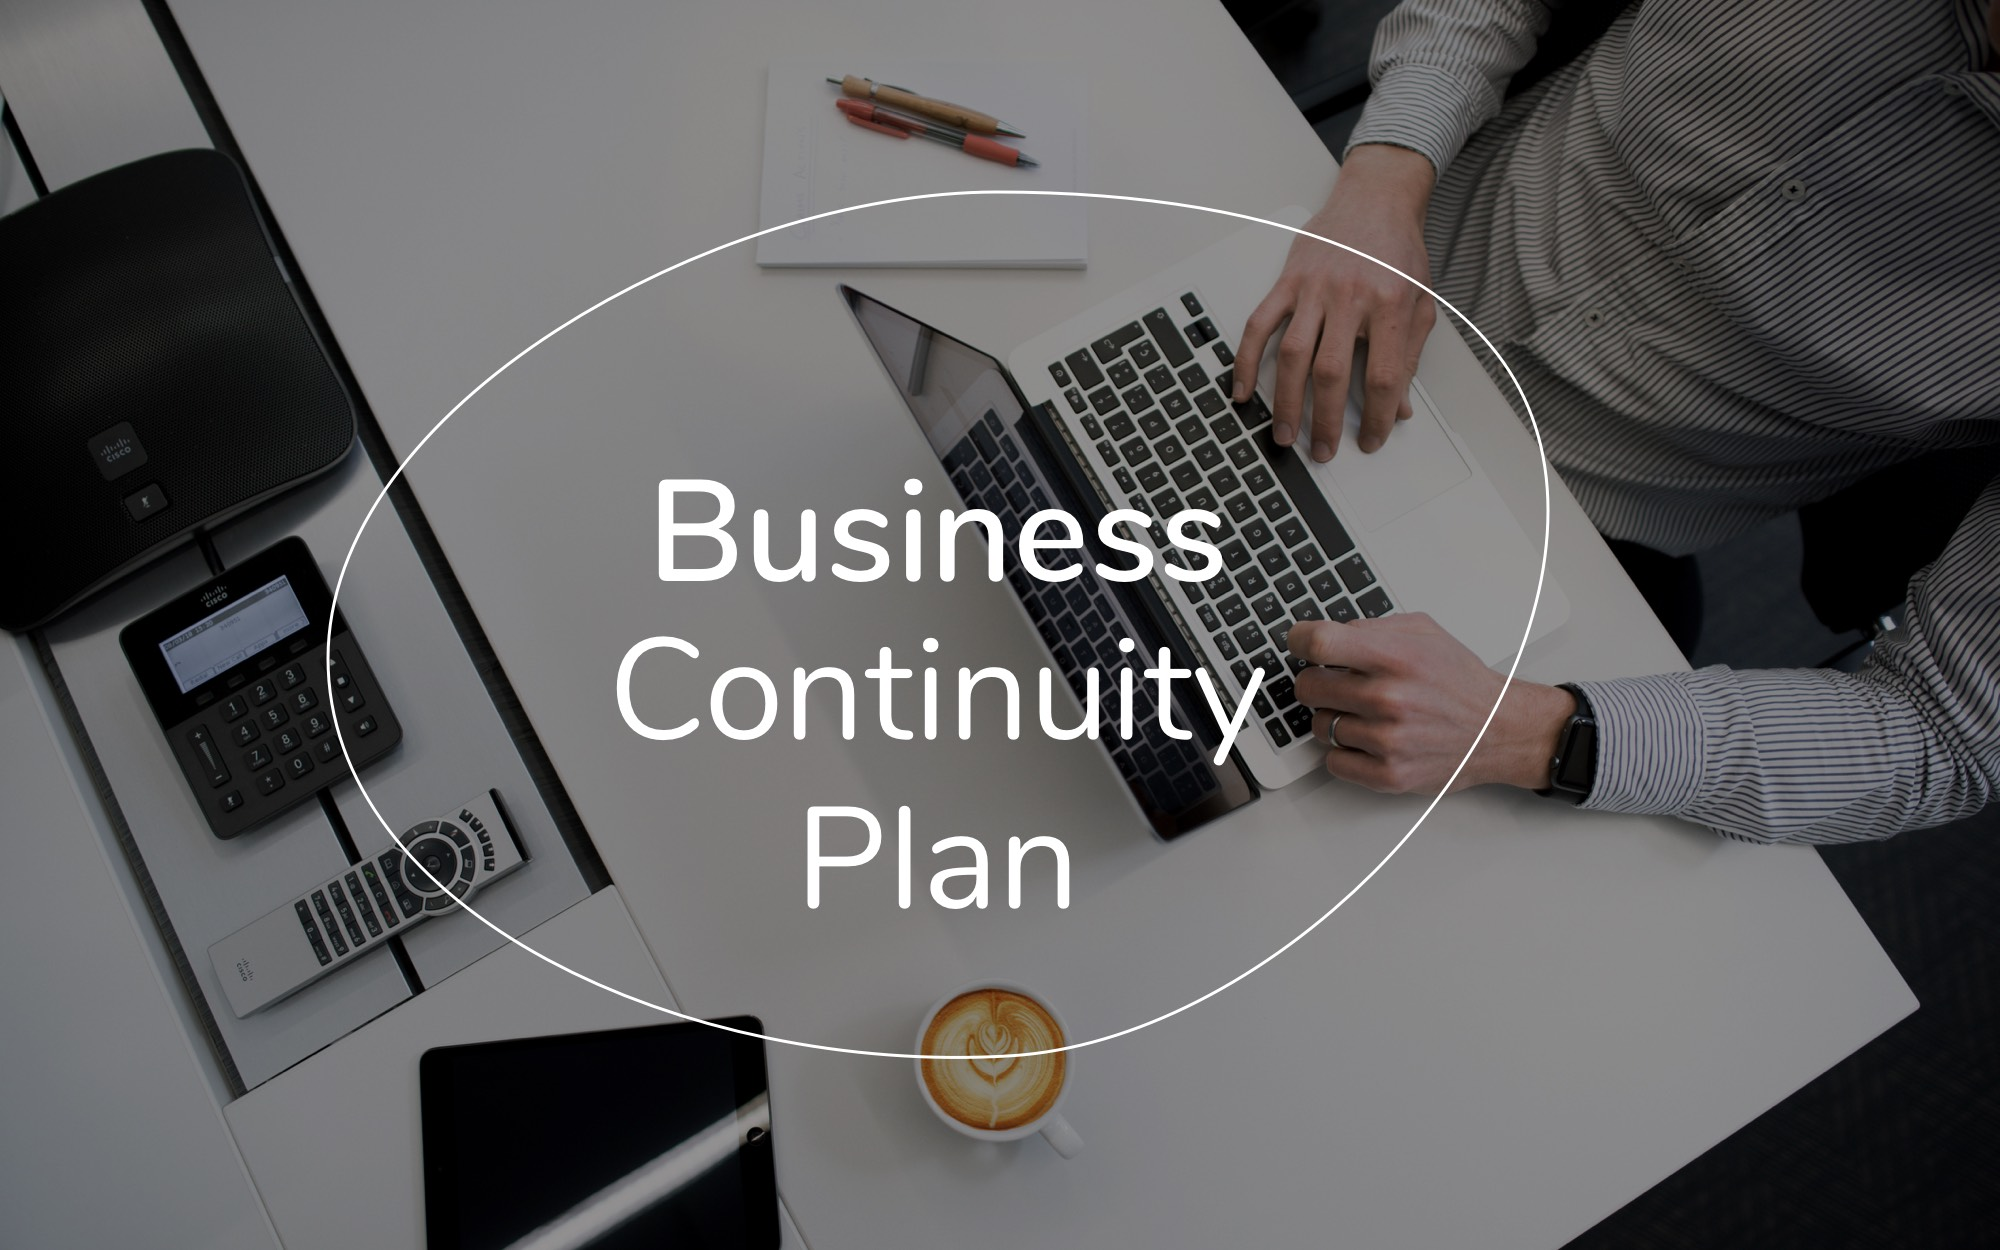 images for business continuity plan template free download